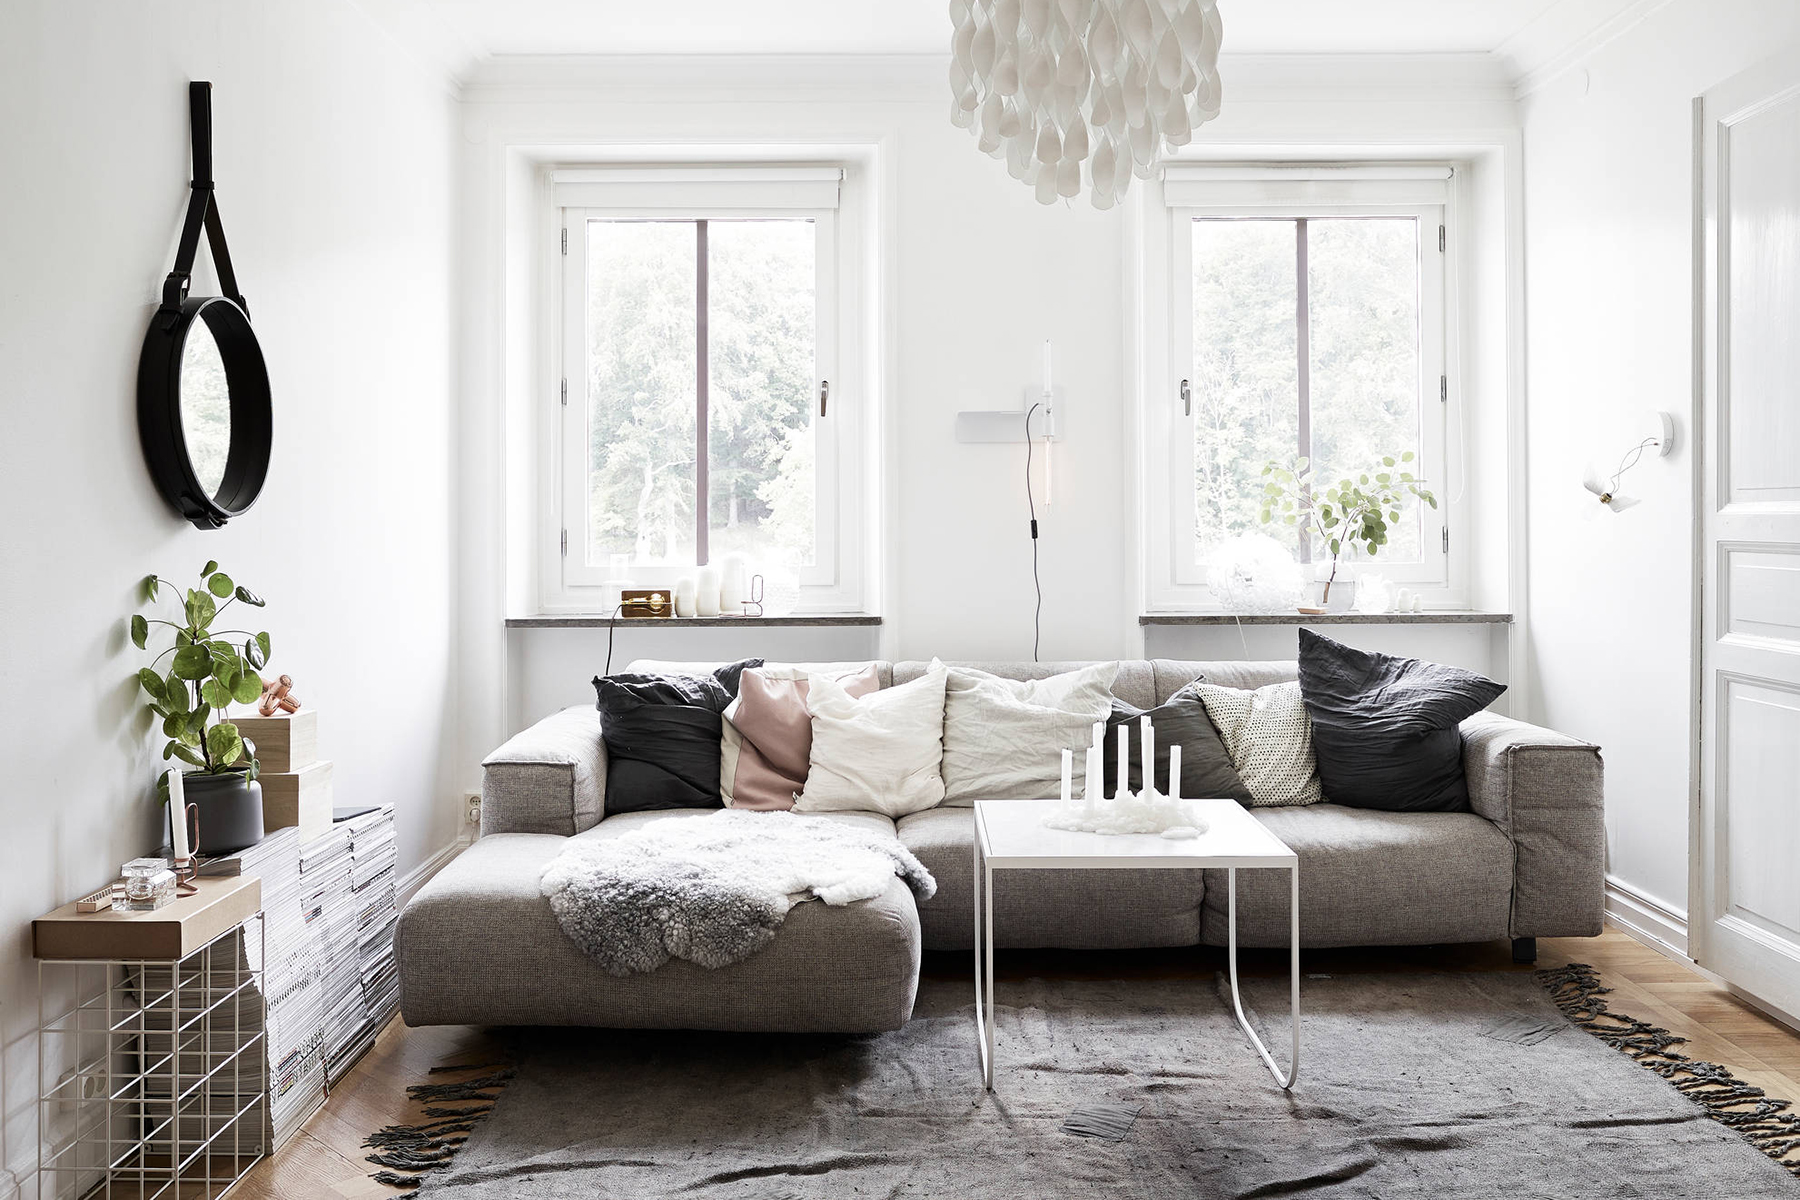 Scandinavian living room textiles  Top 10 tips for adding style to your home Tips Adding Style Your Home Happy